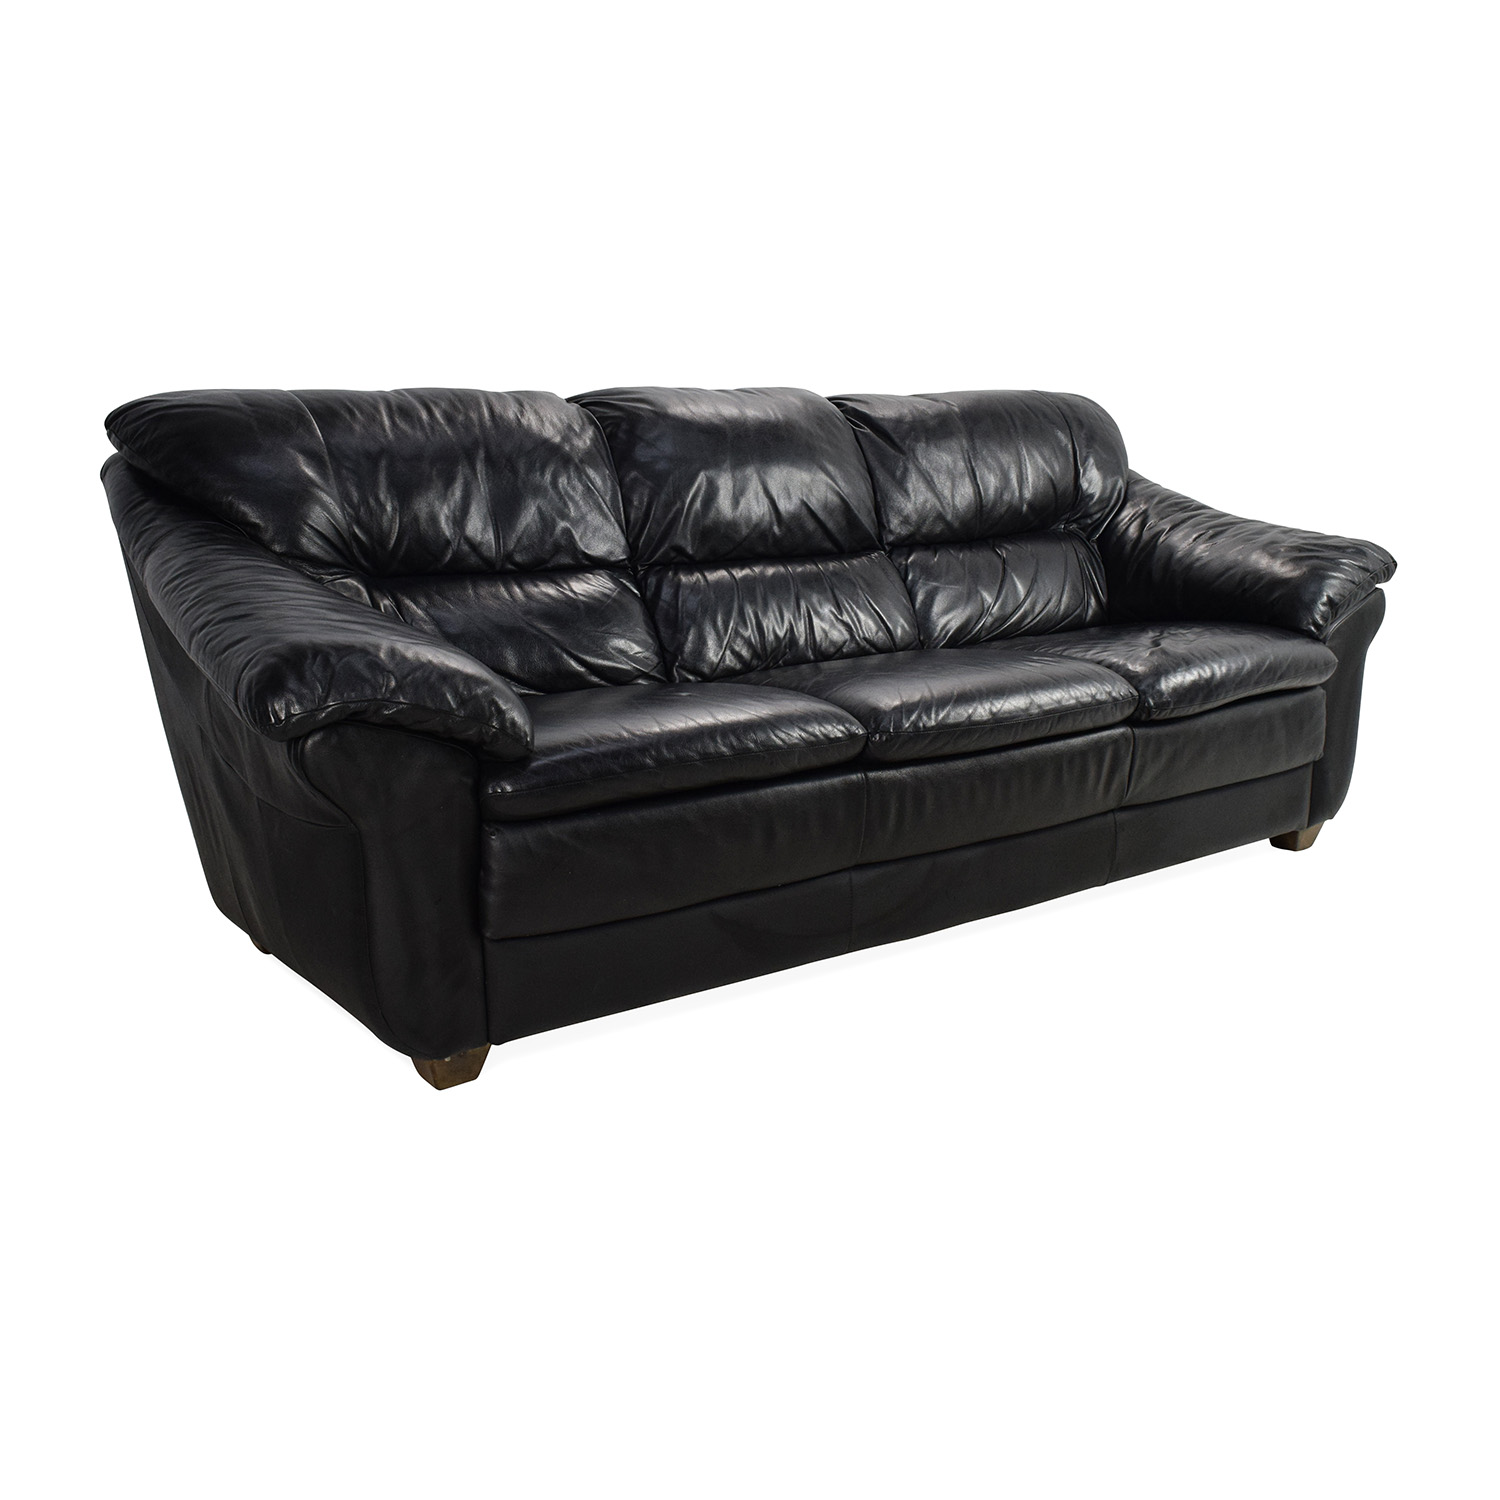 79 off natuzzi natuzzi italian black leather sofa sofas for Italian leather sofa